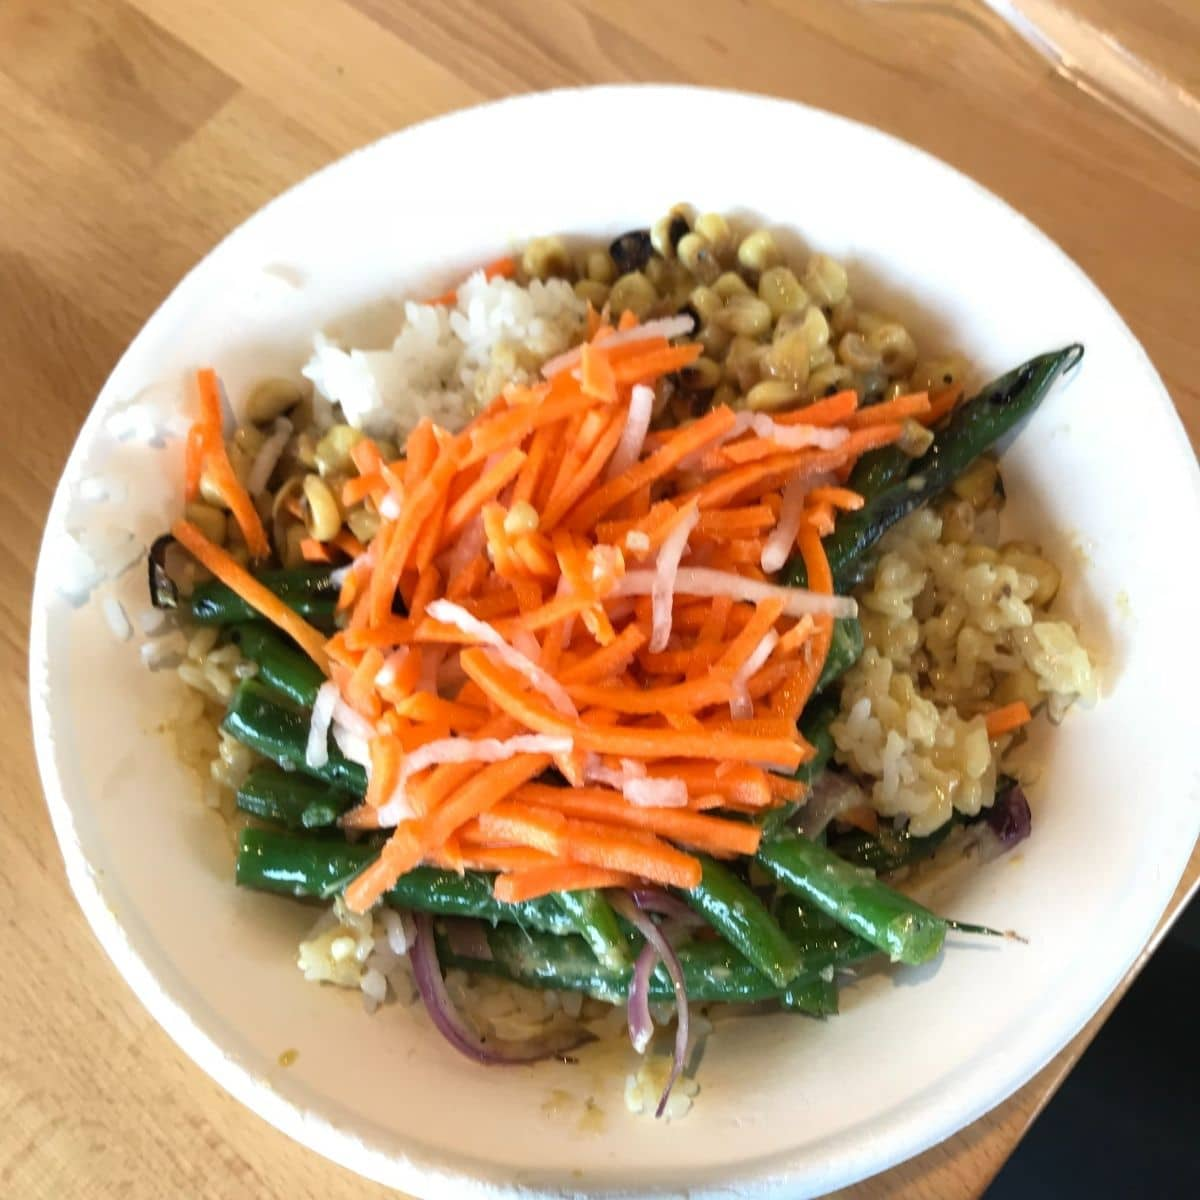 rice bowl with yellow curry, green beans, onions, carrots, and corn in a white paper bowl on a wooden table